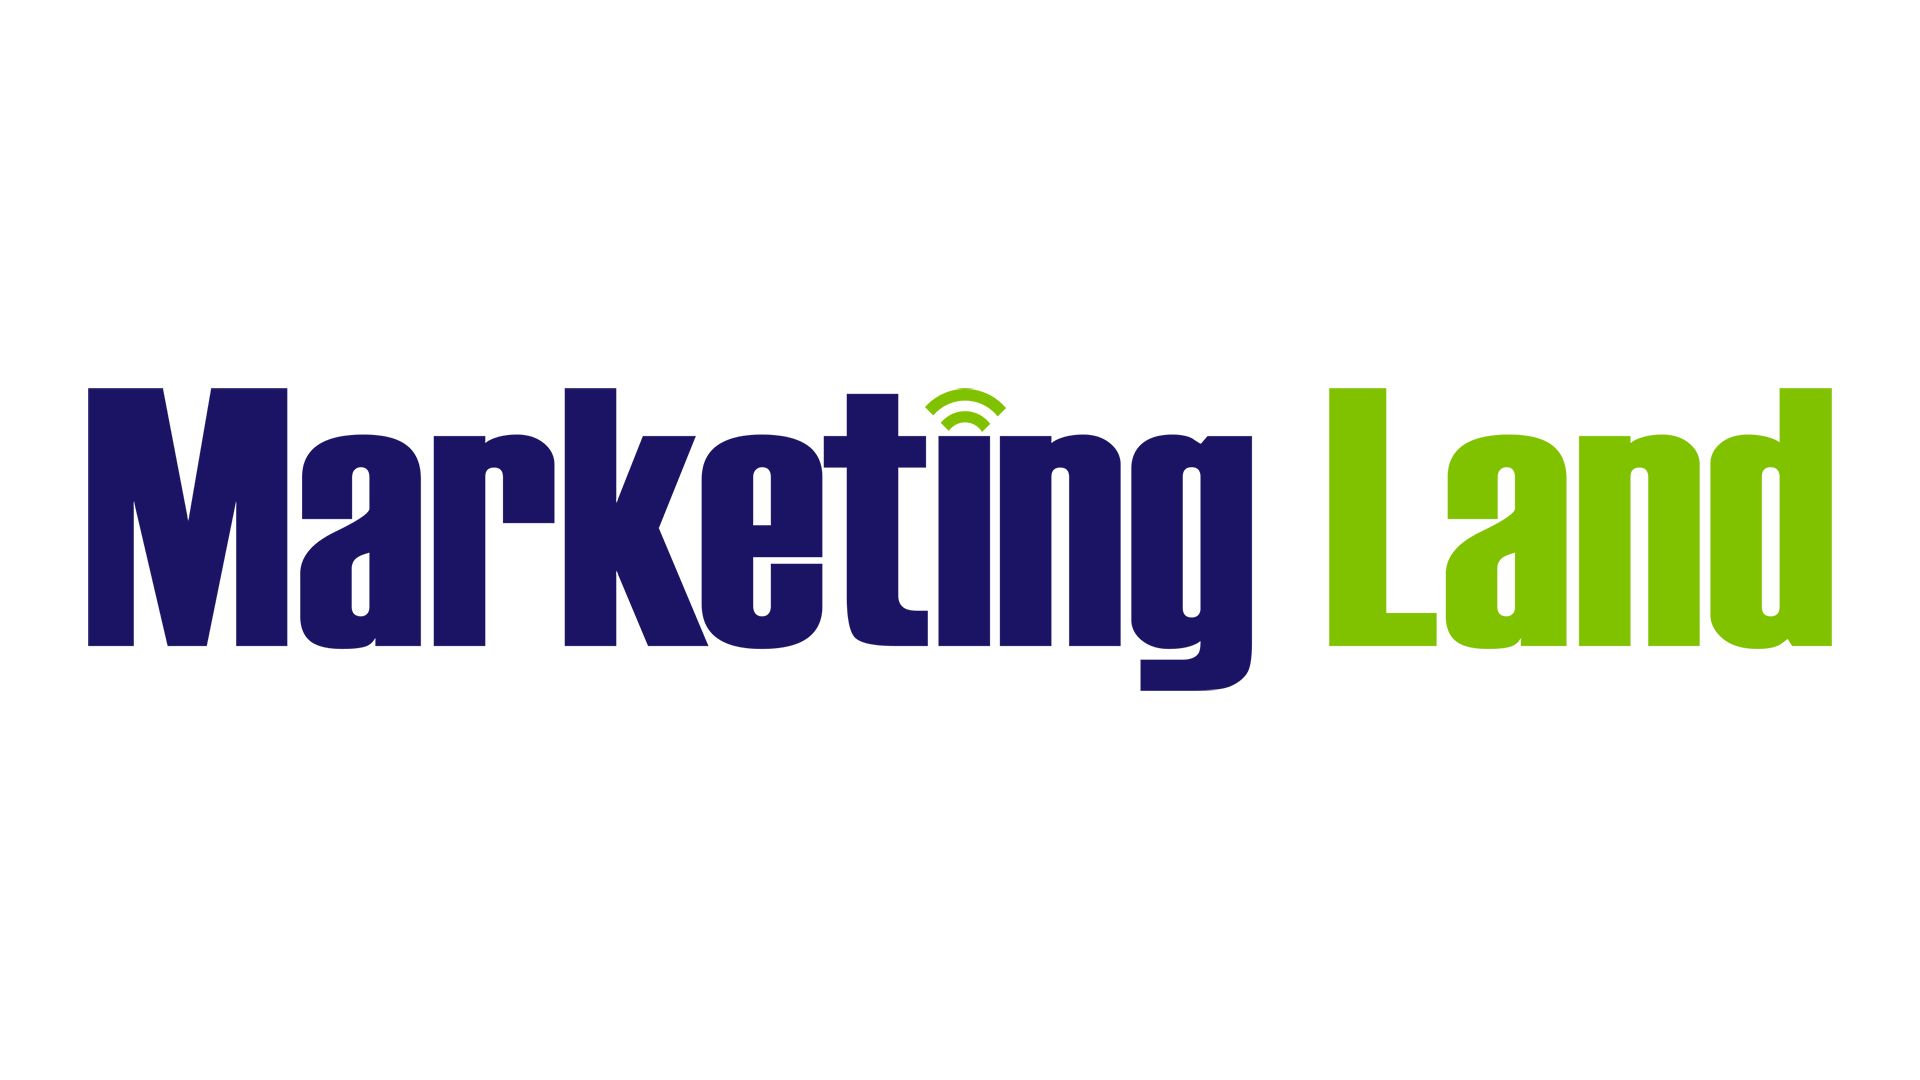 MarketingLand_1920x1080.png